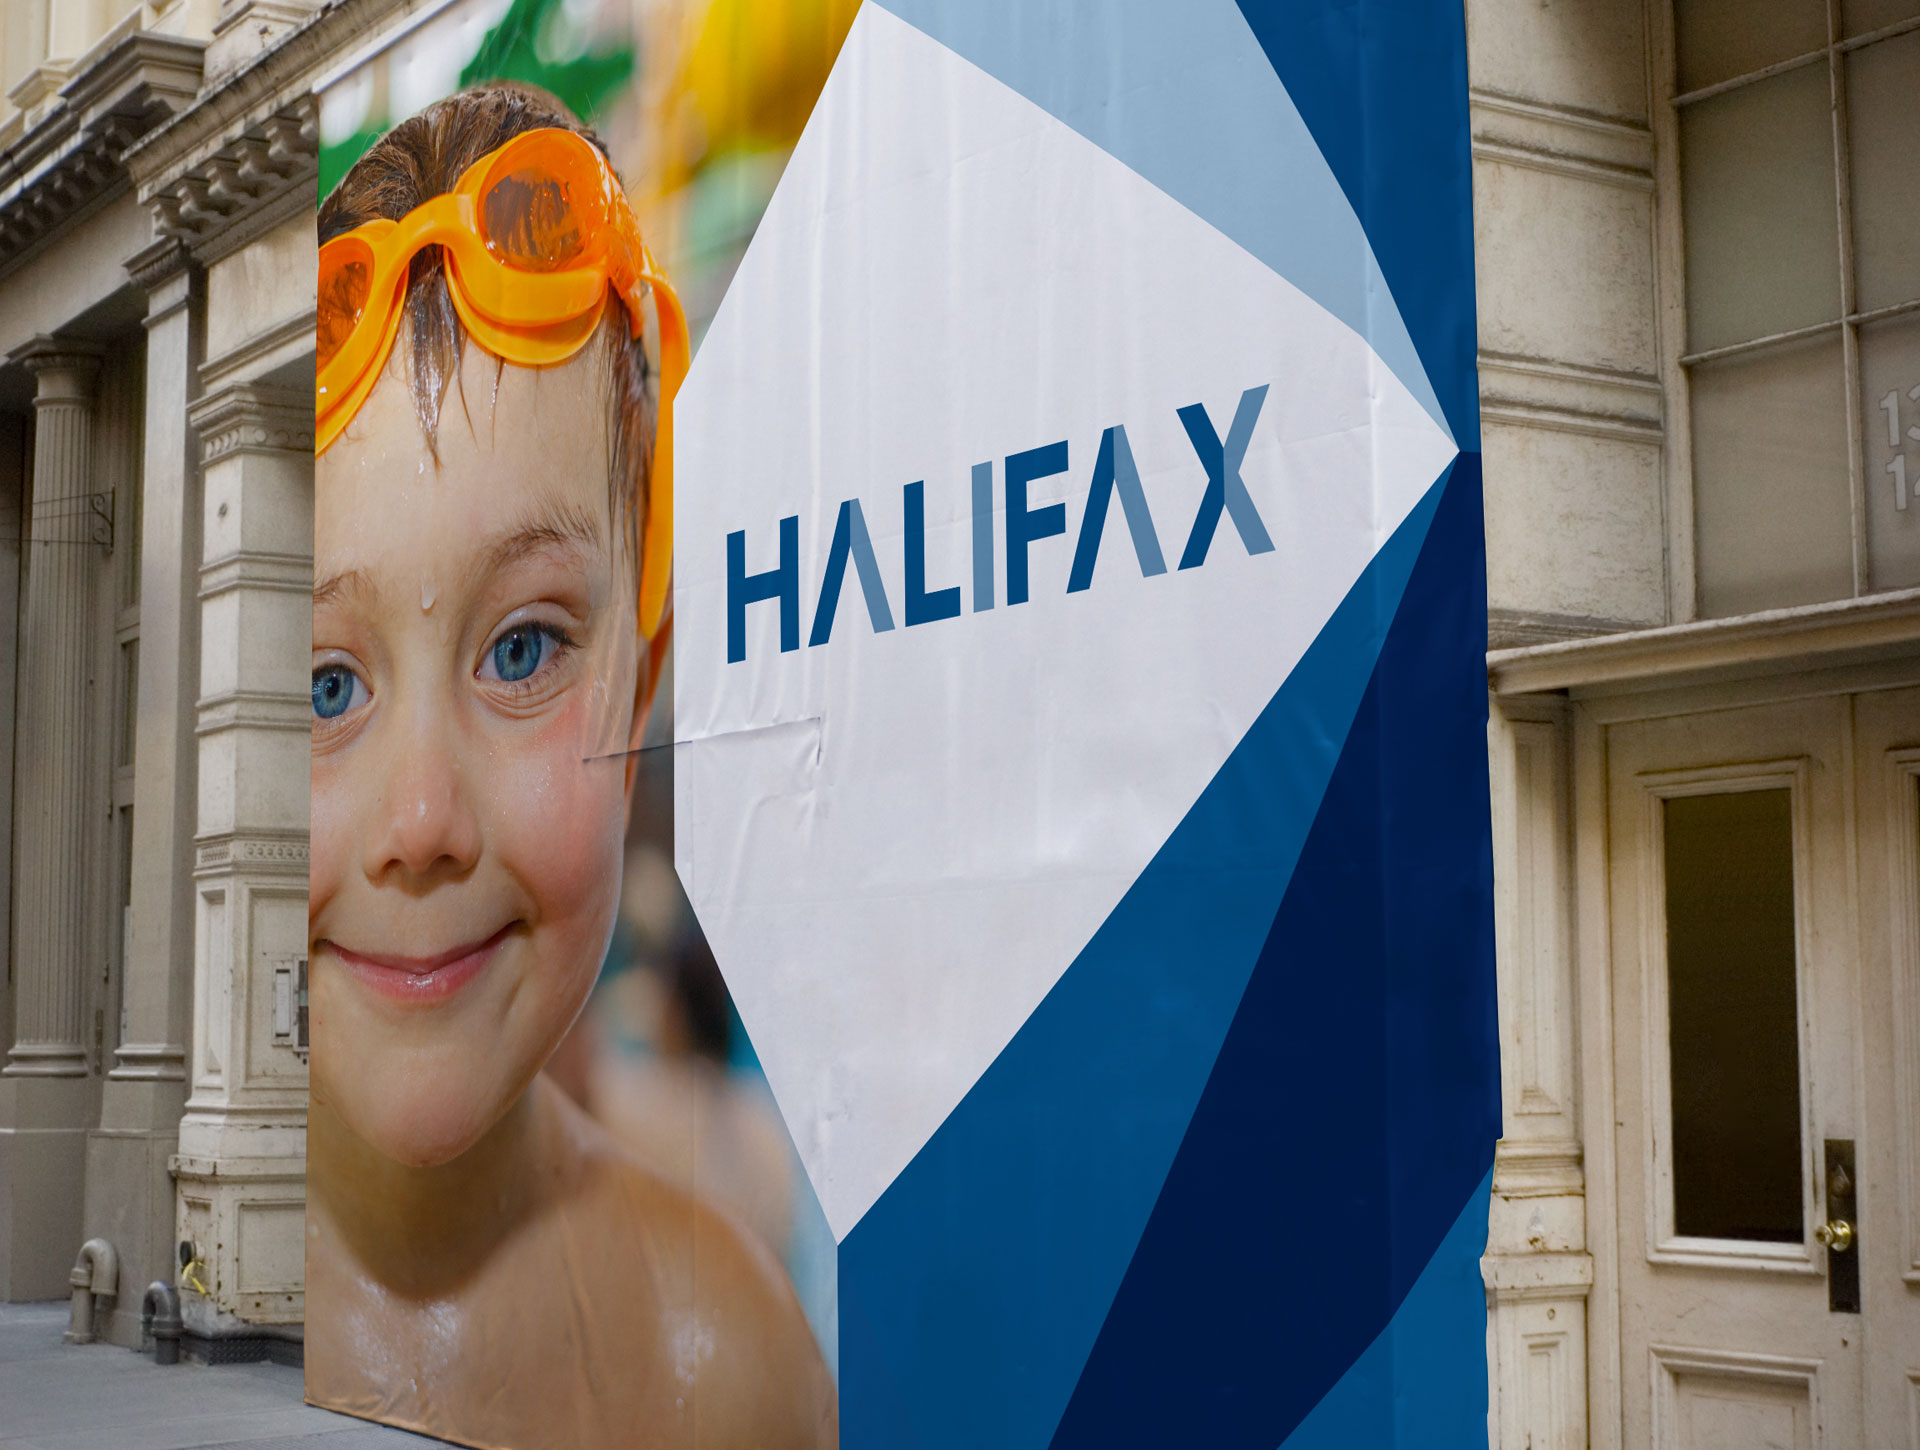 Halifax Print advertisement